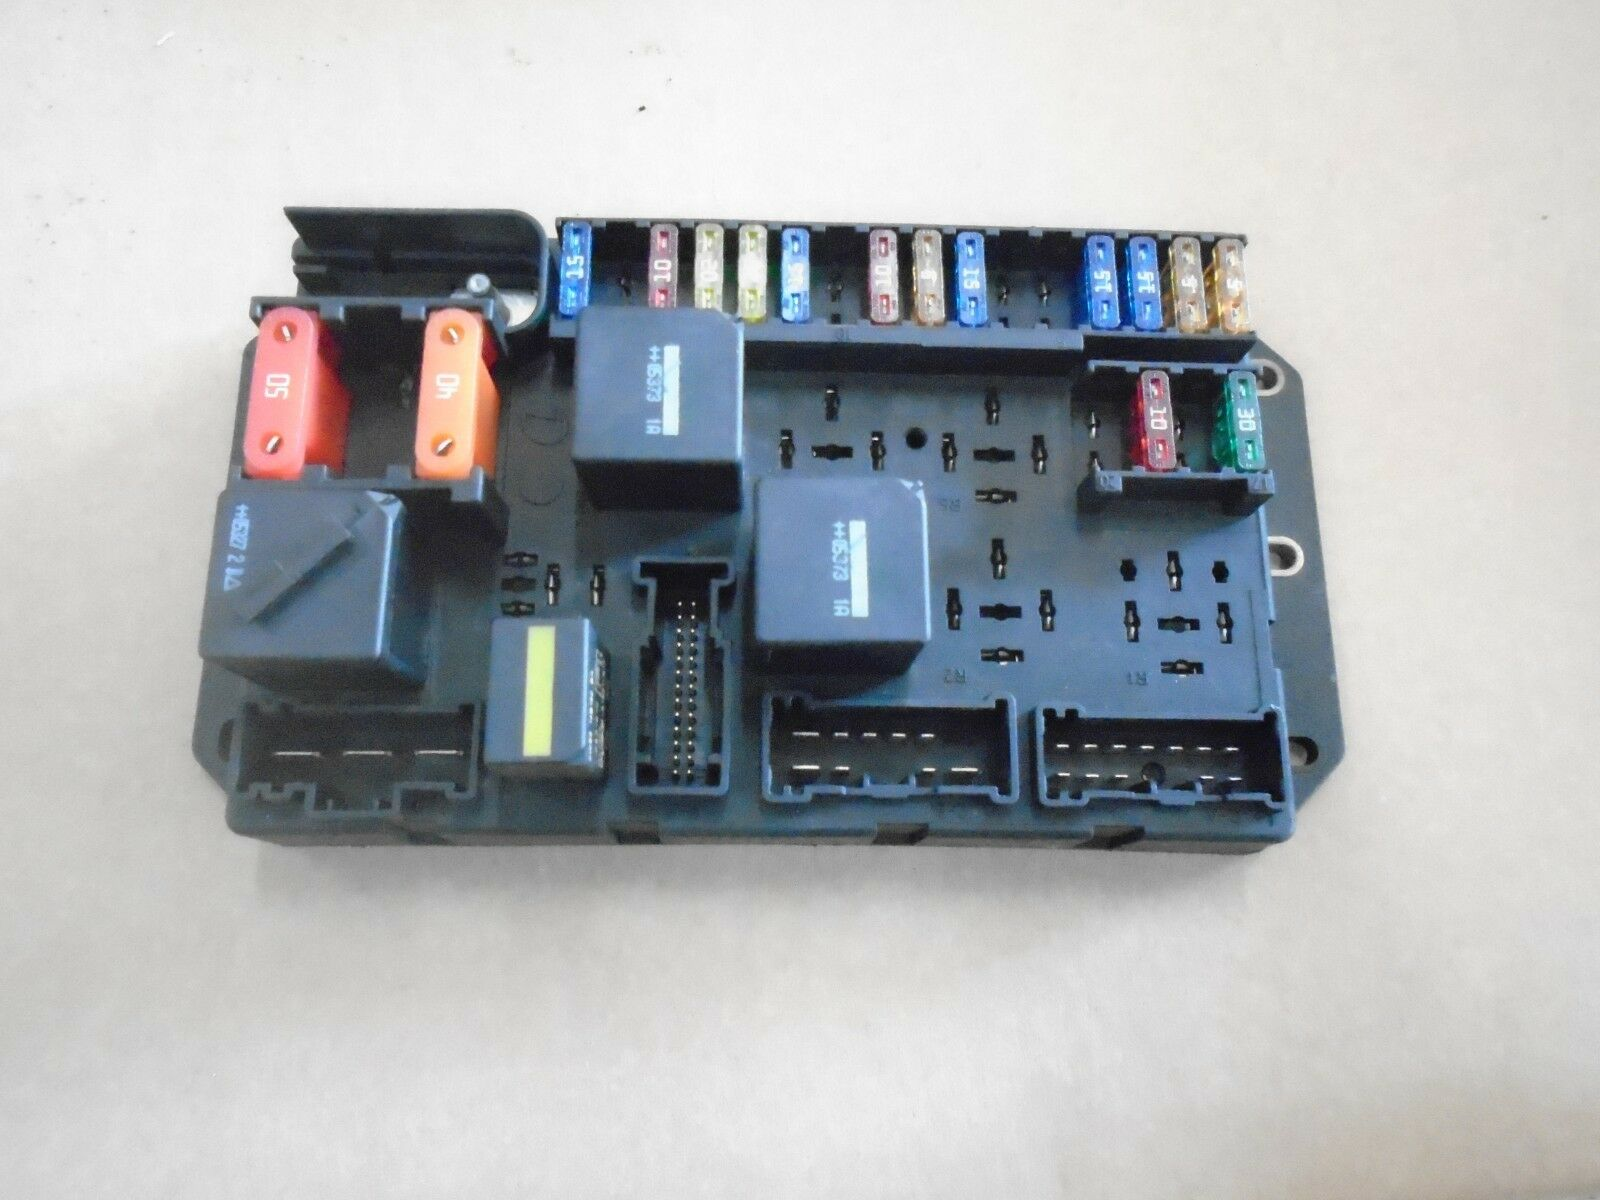 Land Rover Range Rover L322 4.2 Supercharged V8 Engine Bay Fuse Box  Yqe500090 1 of 1Only 1 available ...